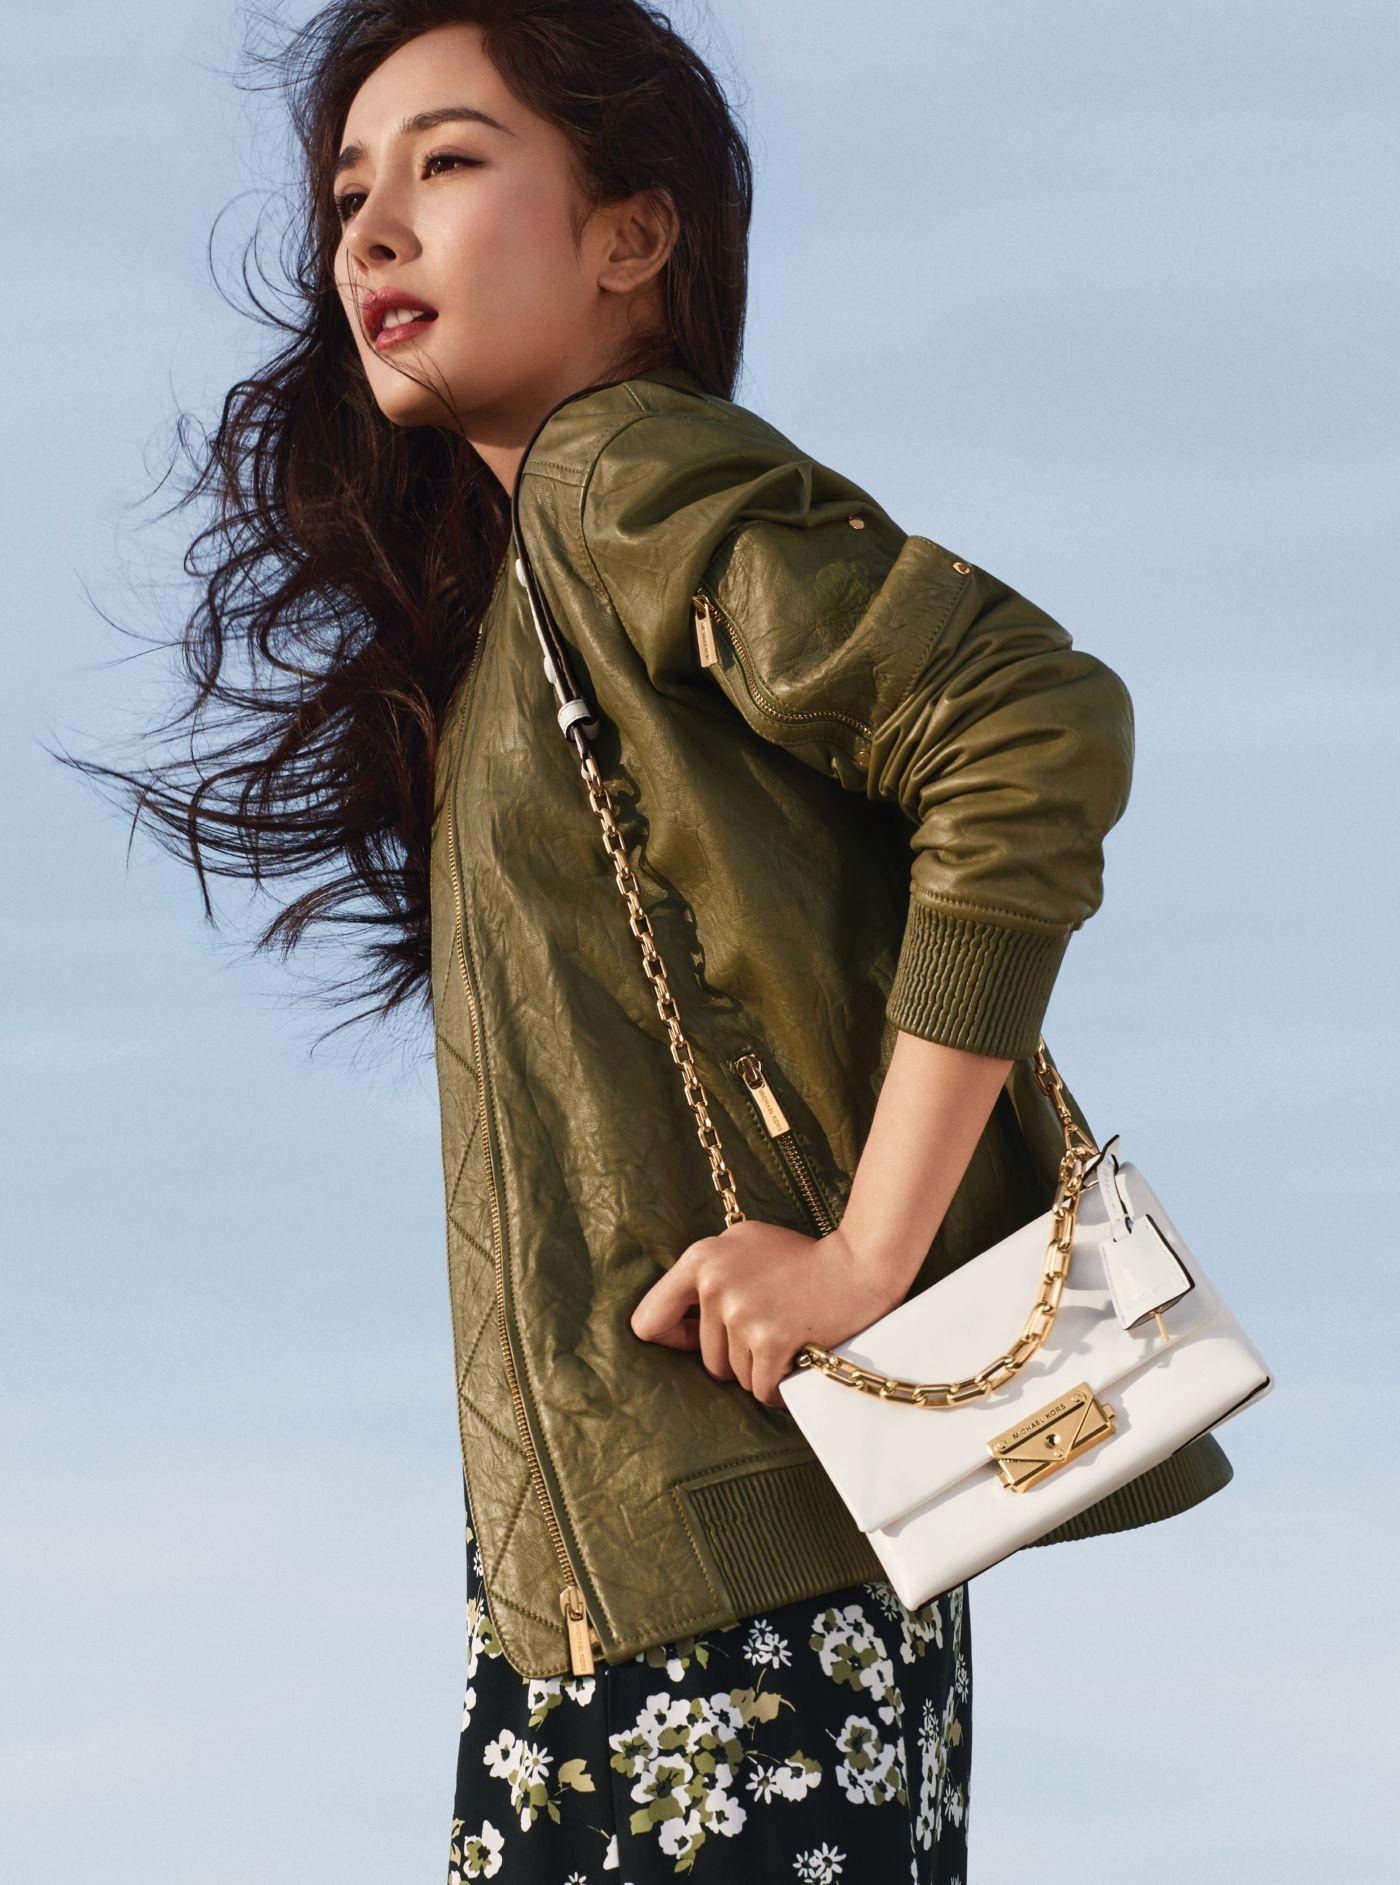 Michael Kors Cece Extra Small Leather Crossbody Bag In